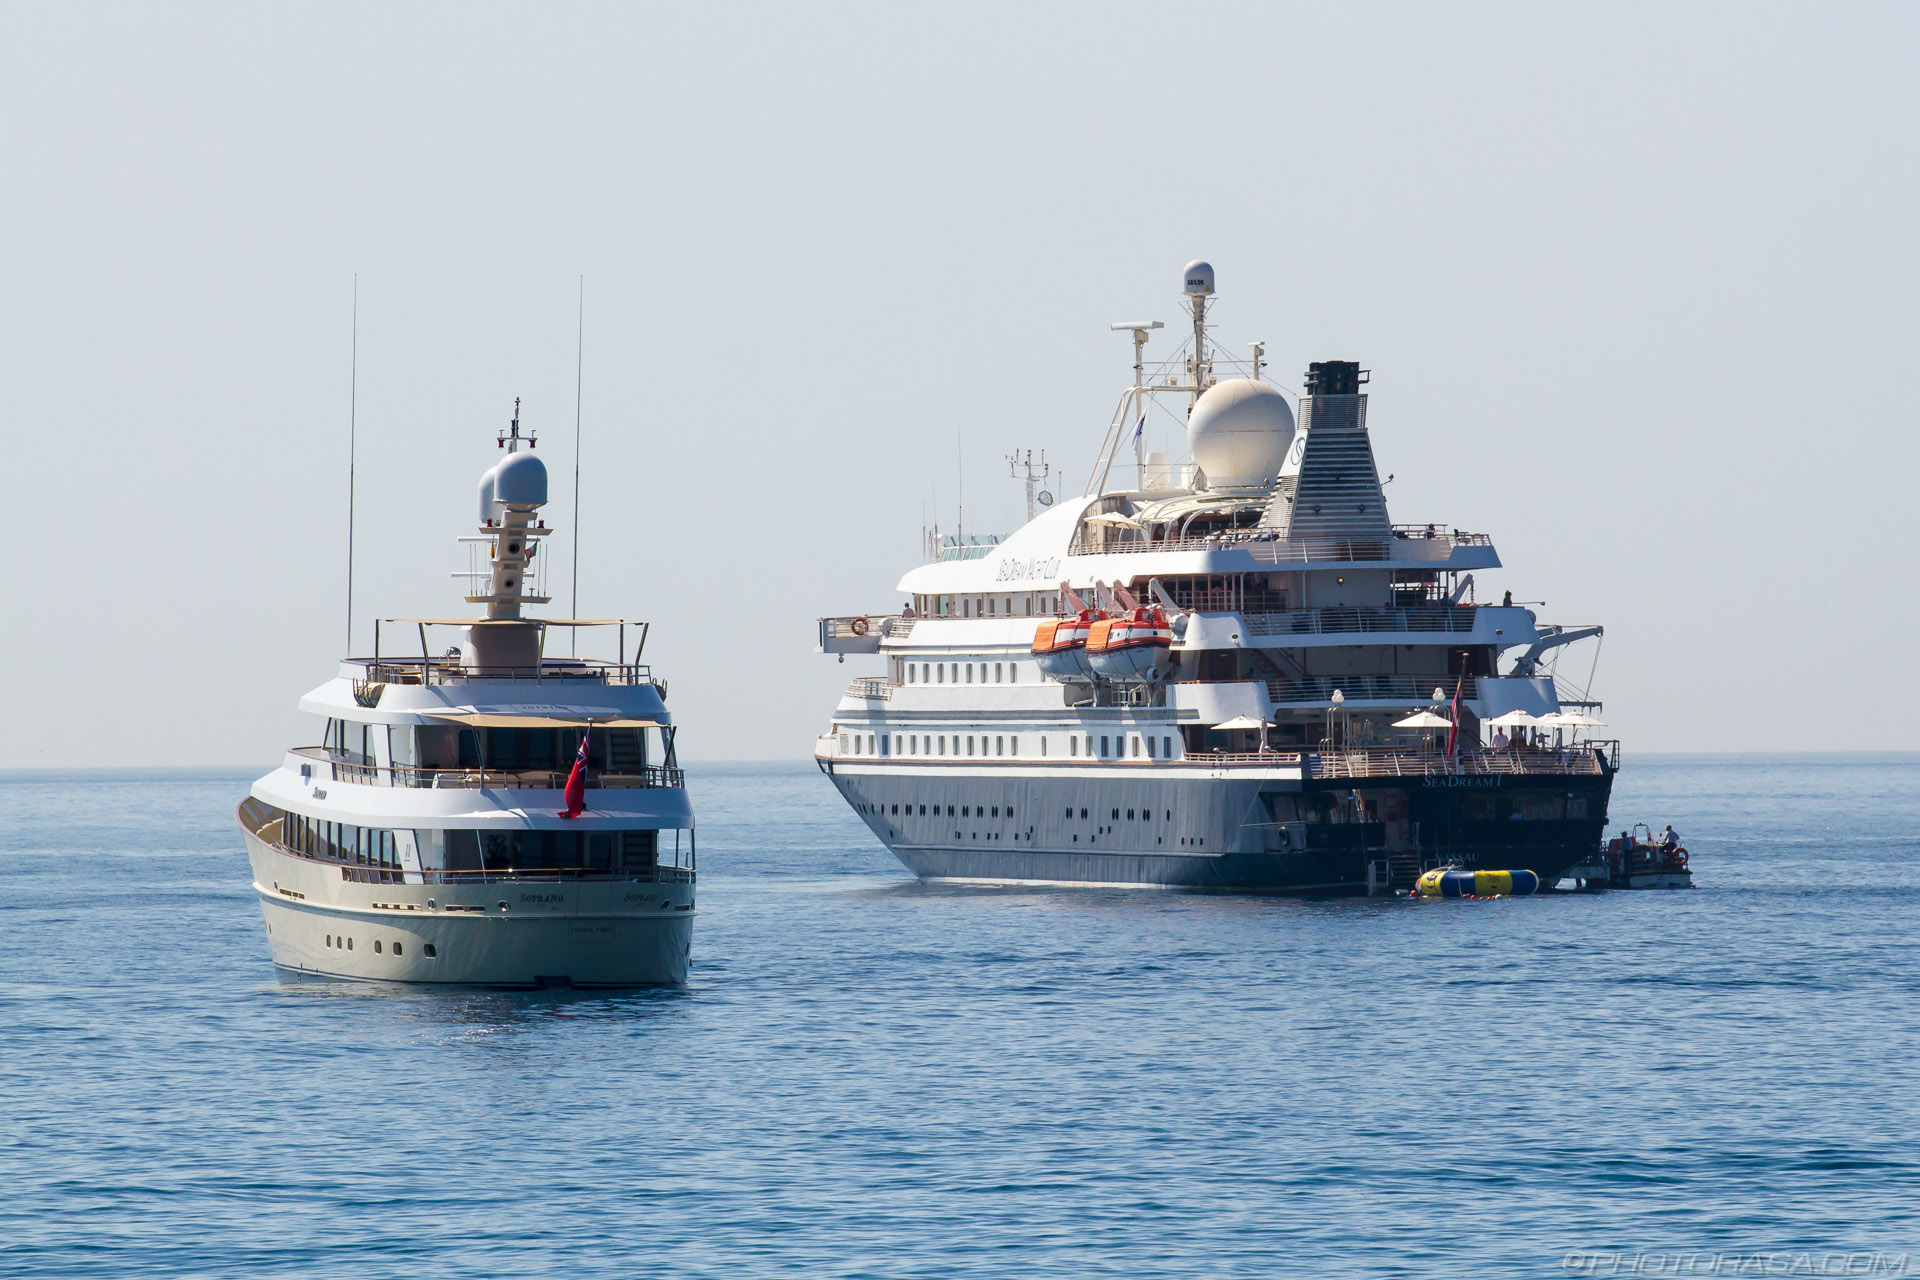 https://photorasa.com/giardini-naxos/two-super-yachts-close-up/